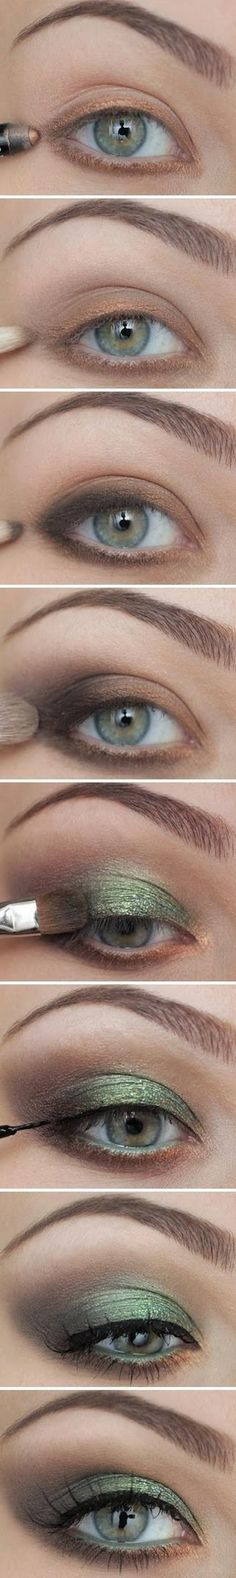 Charming makeup for green eyes